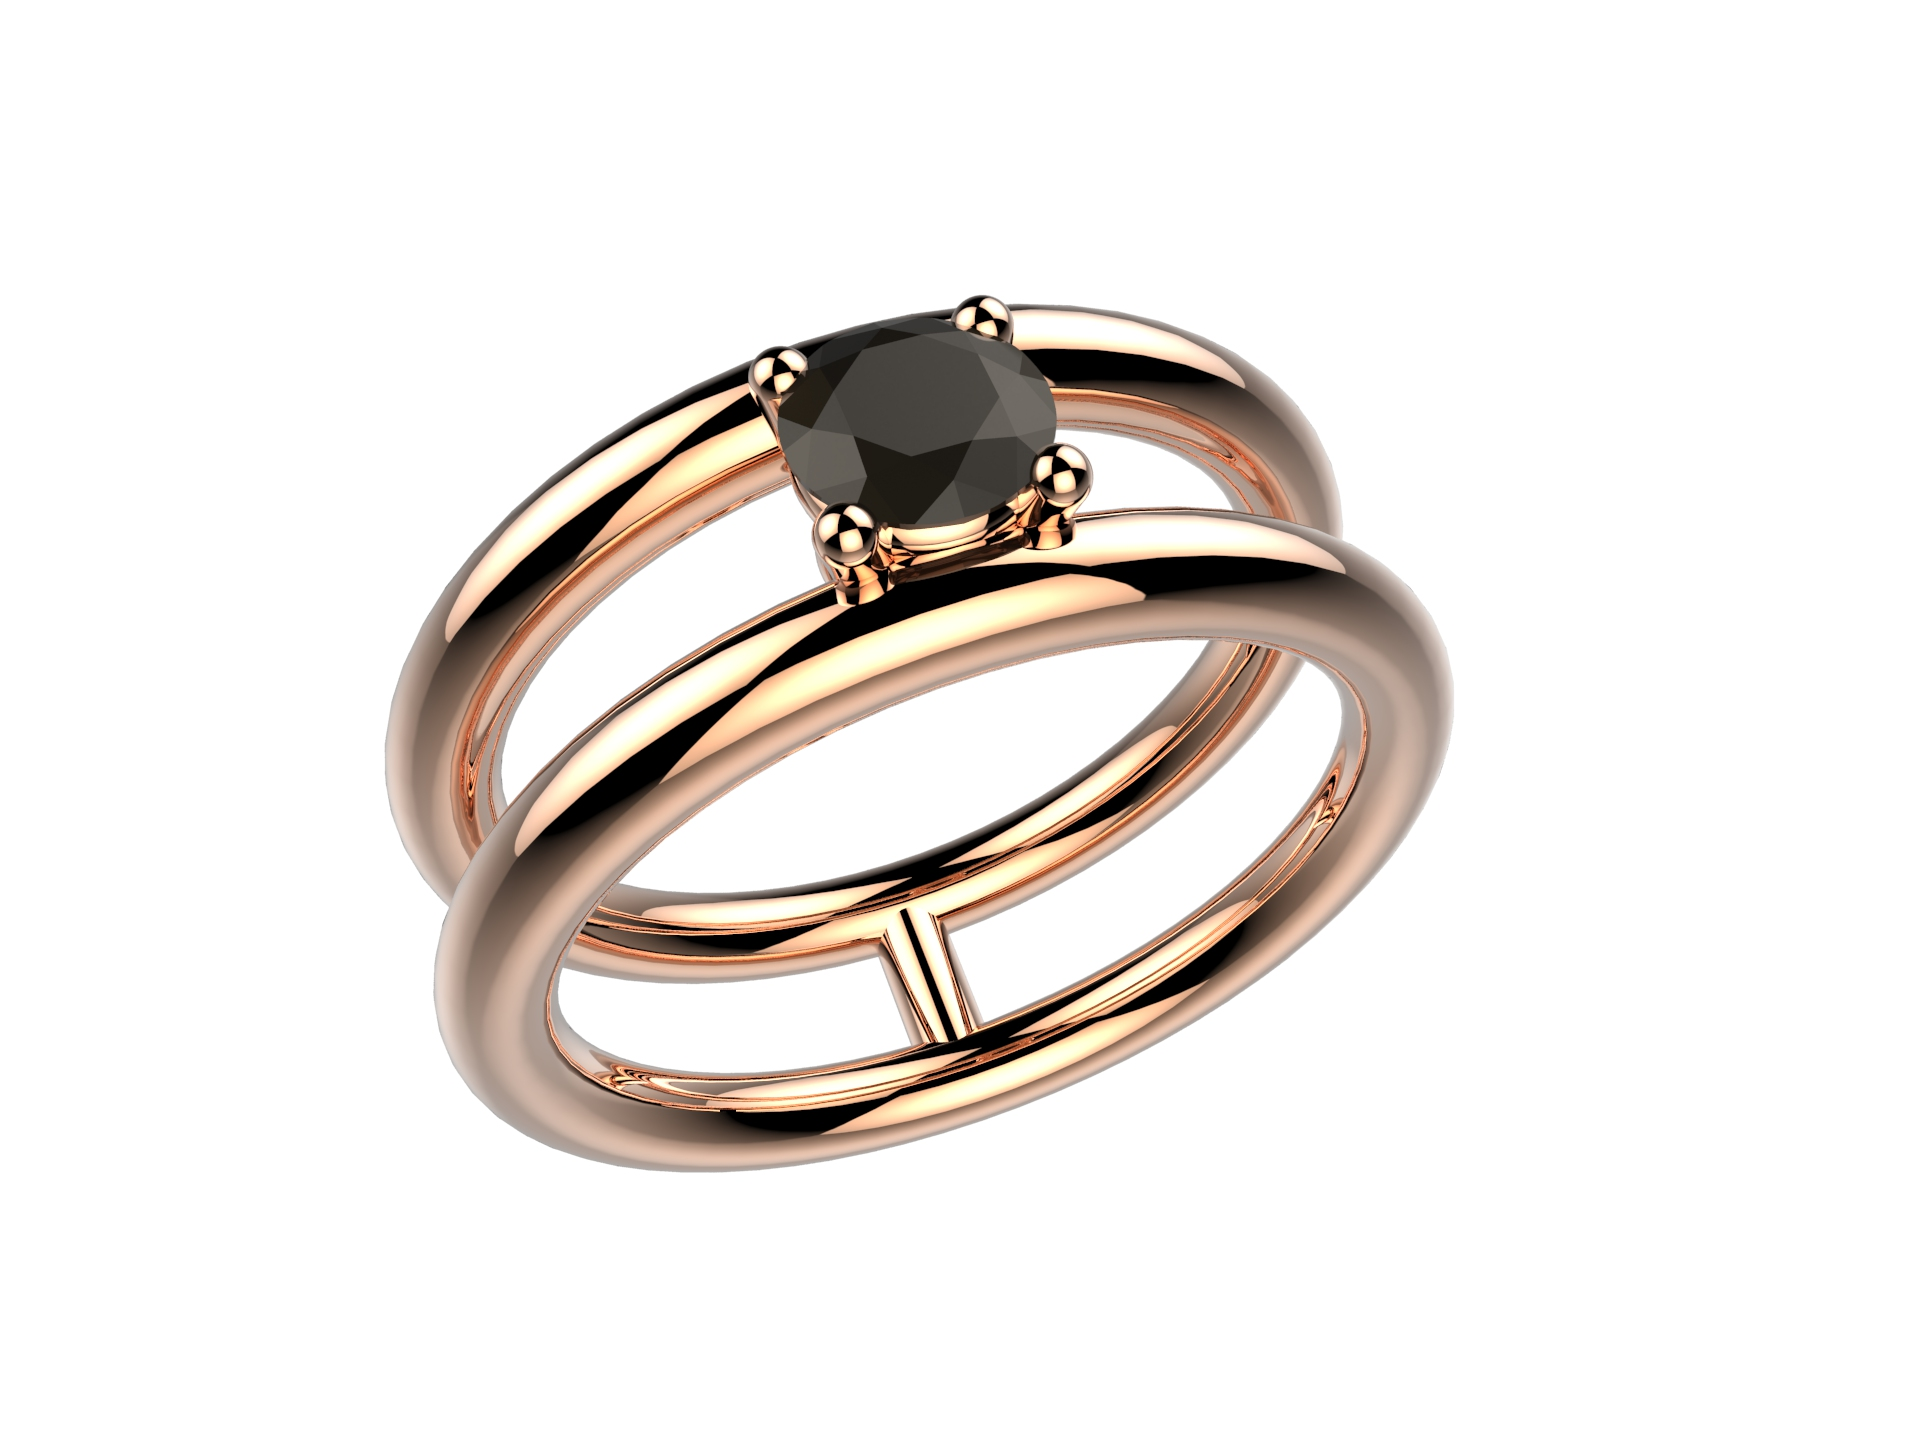 Bague or rose diamant noir 2430 €